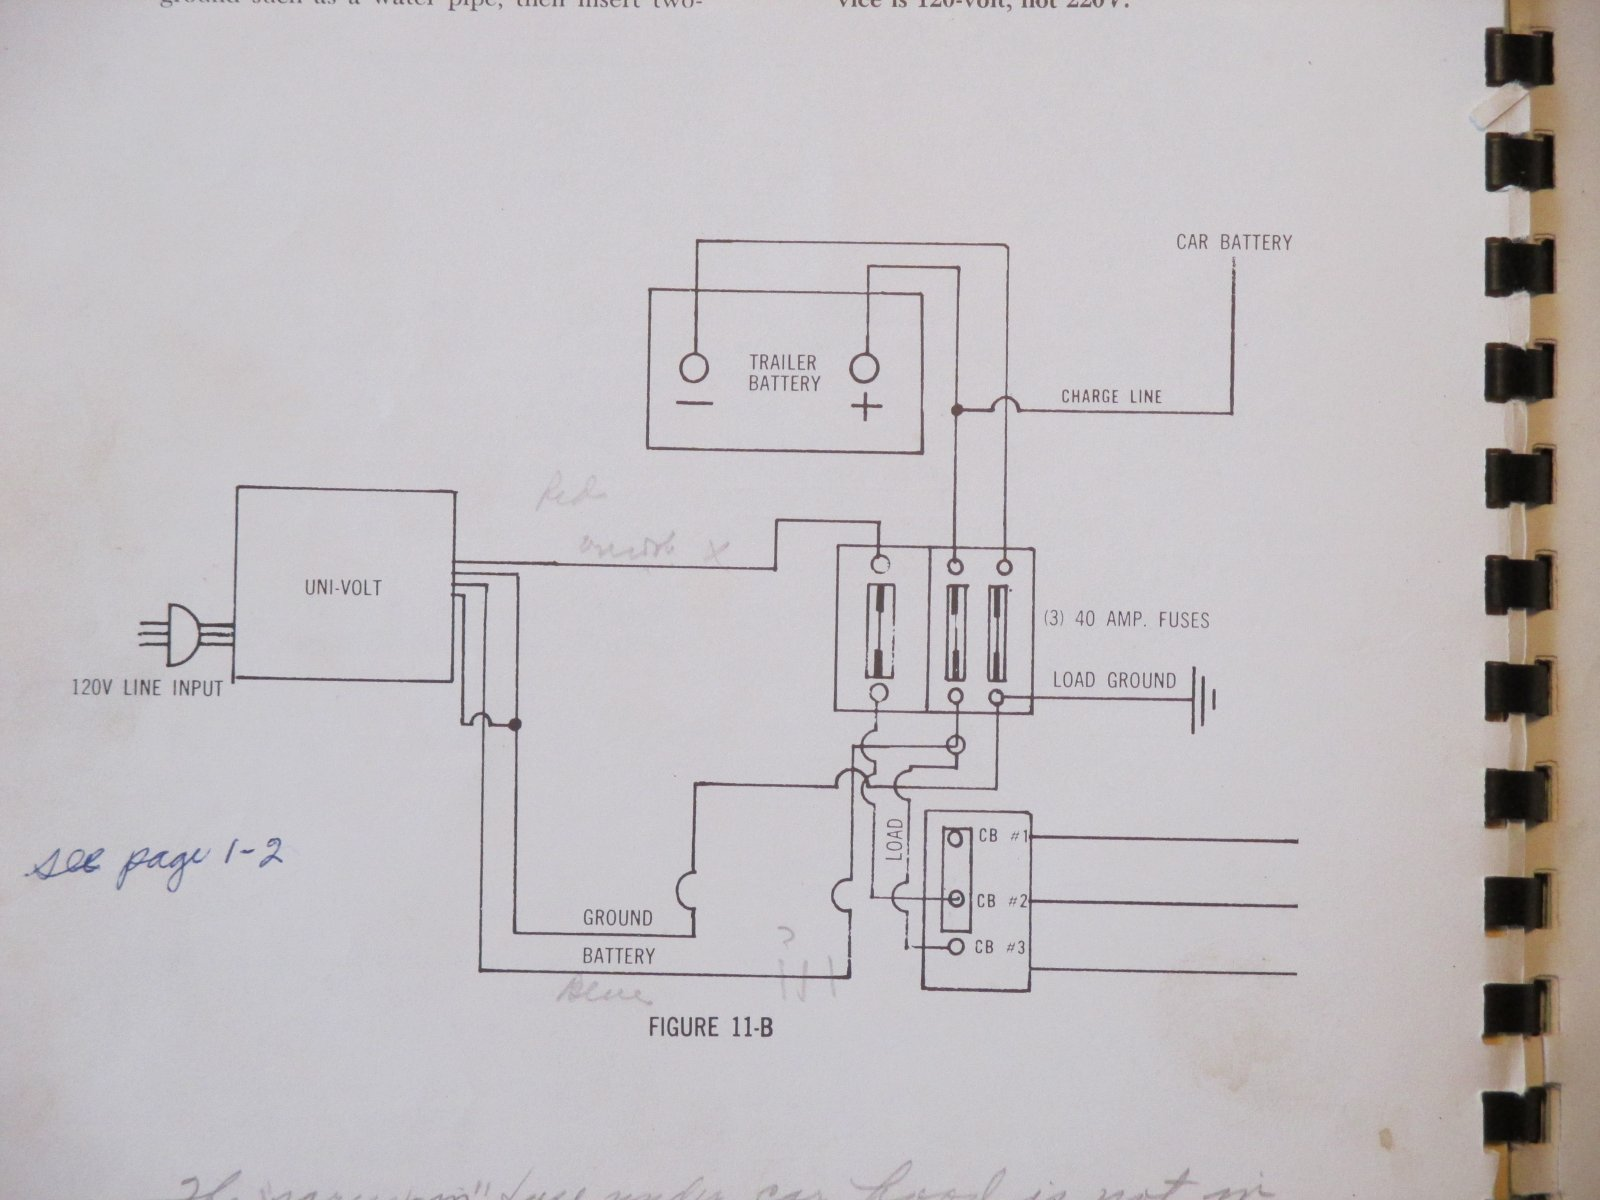 6400 Converter Wiring Diagram Another Blog About Magnetek 6332 And